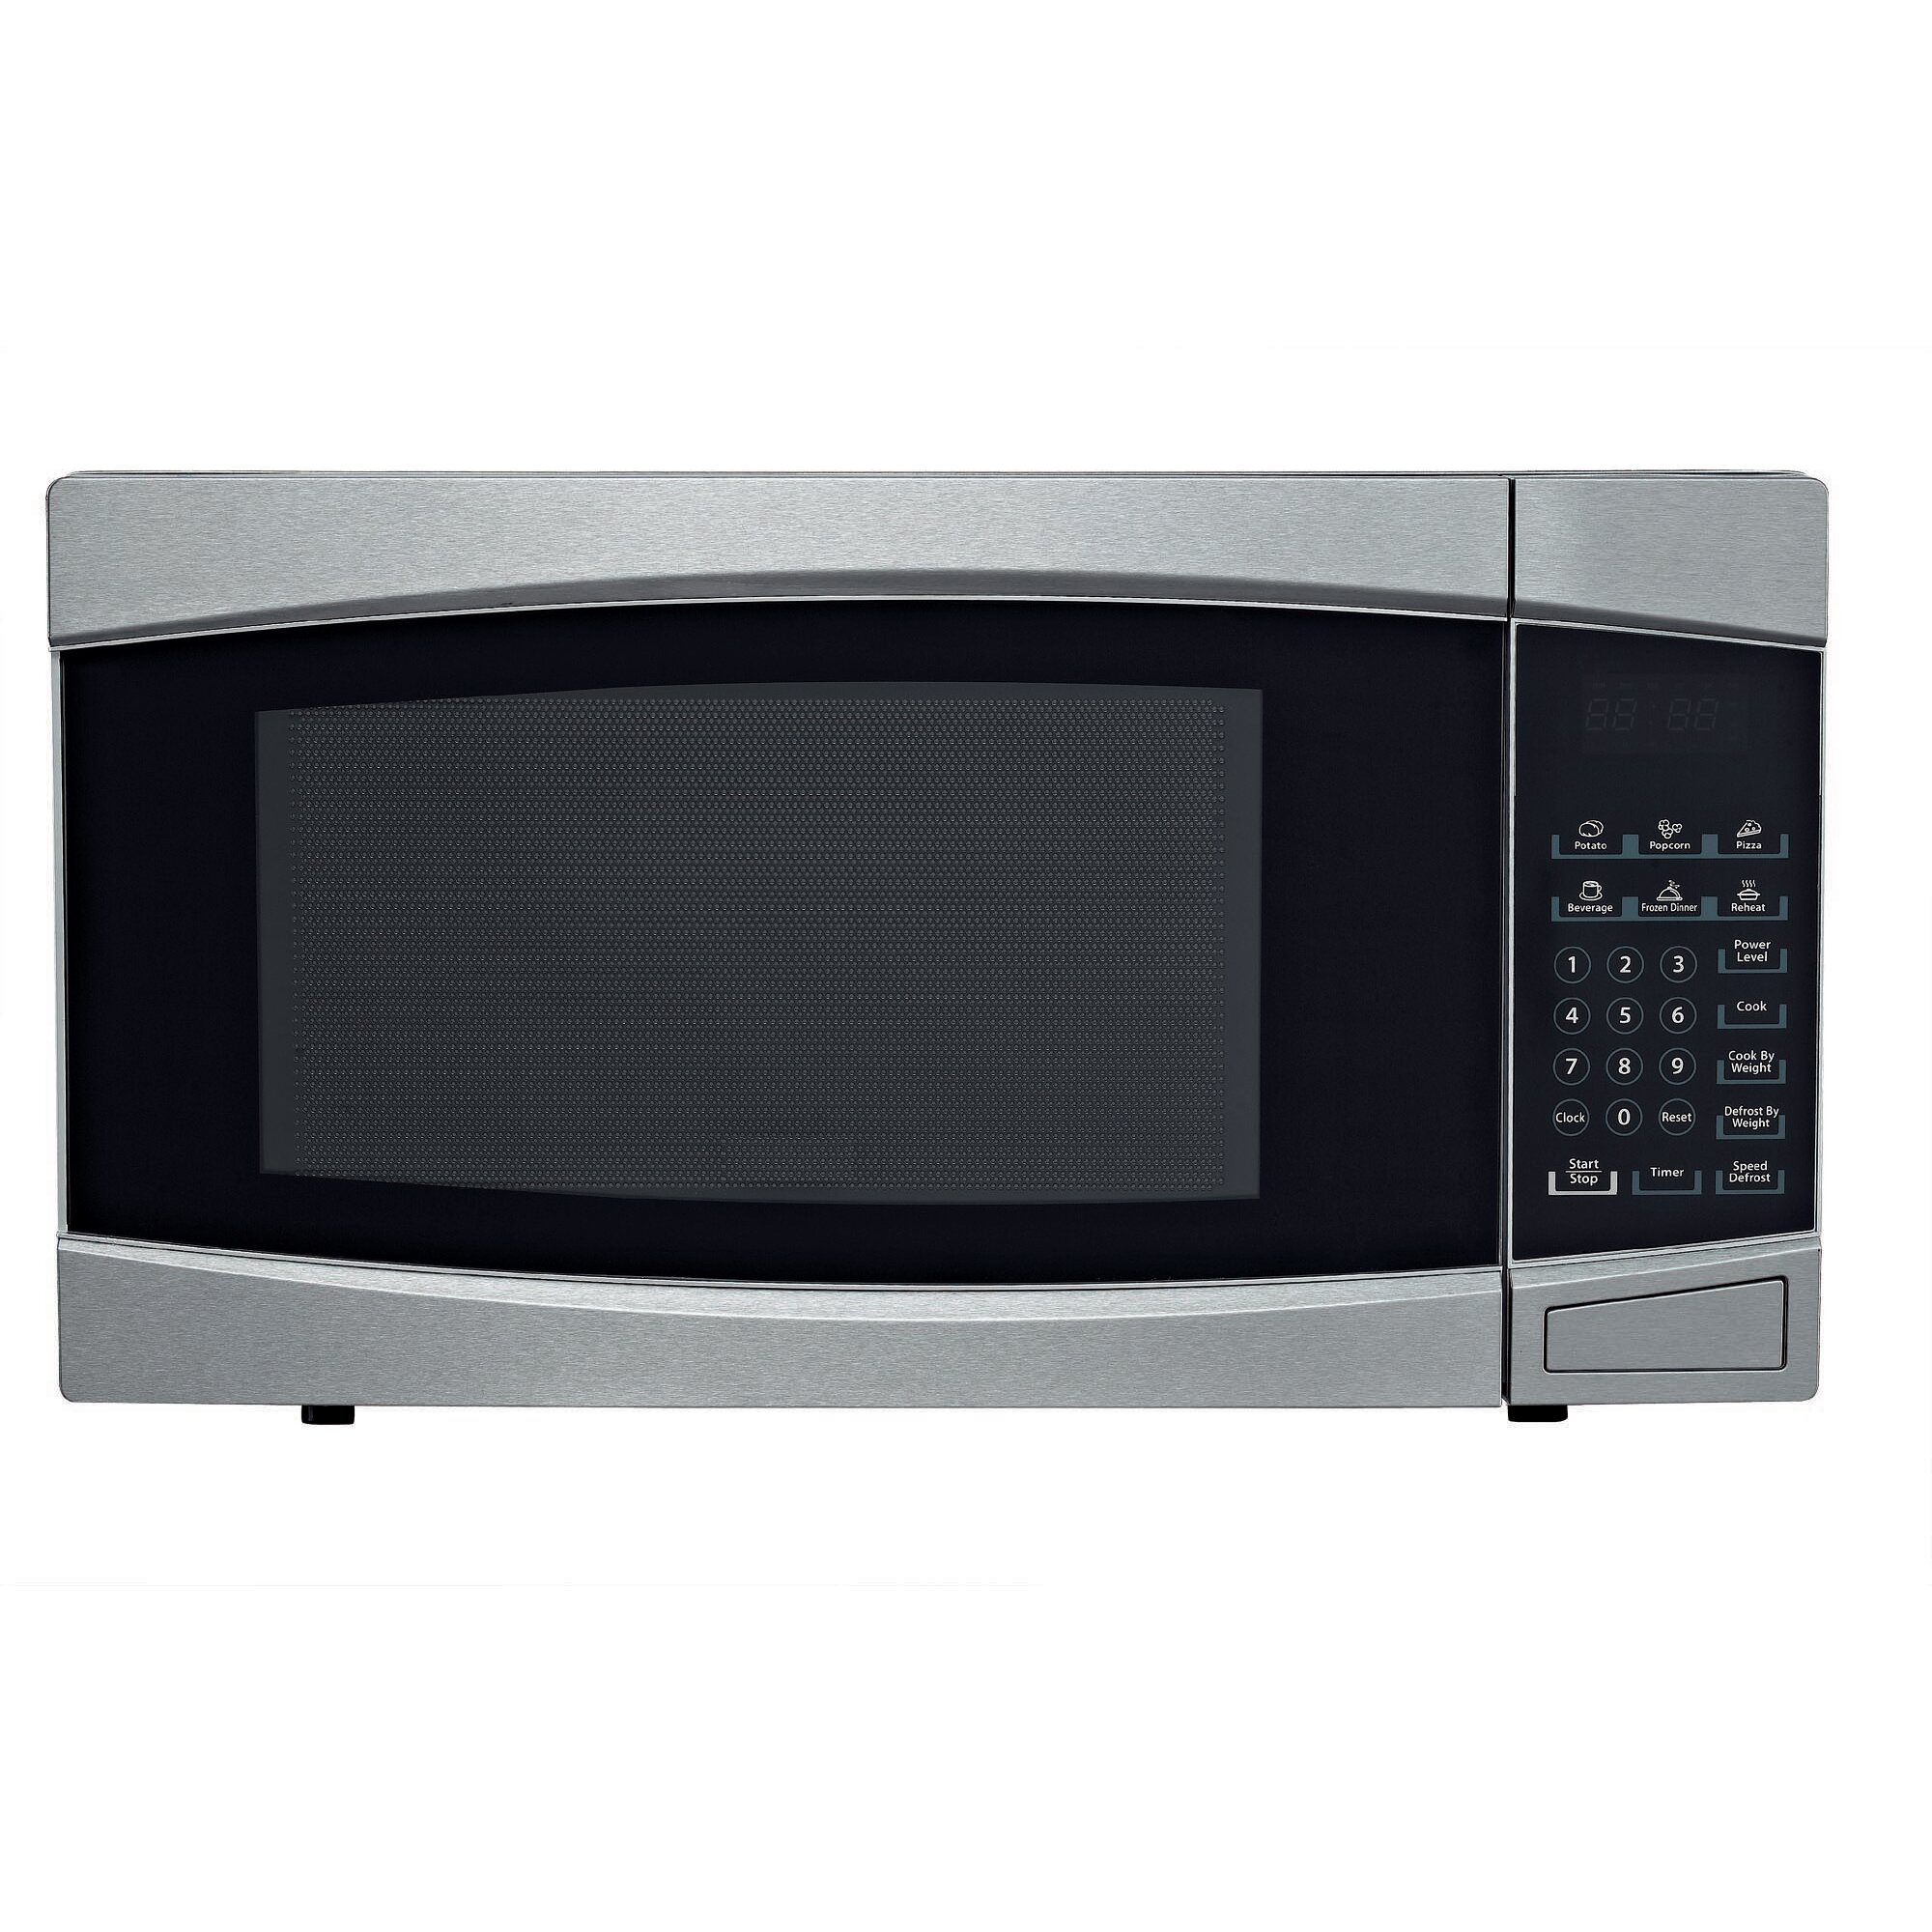 RCA Products 1.4 cu. ft. 1000W Countertop Microwave & Reviews ...